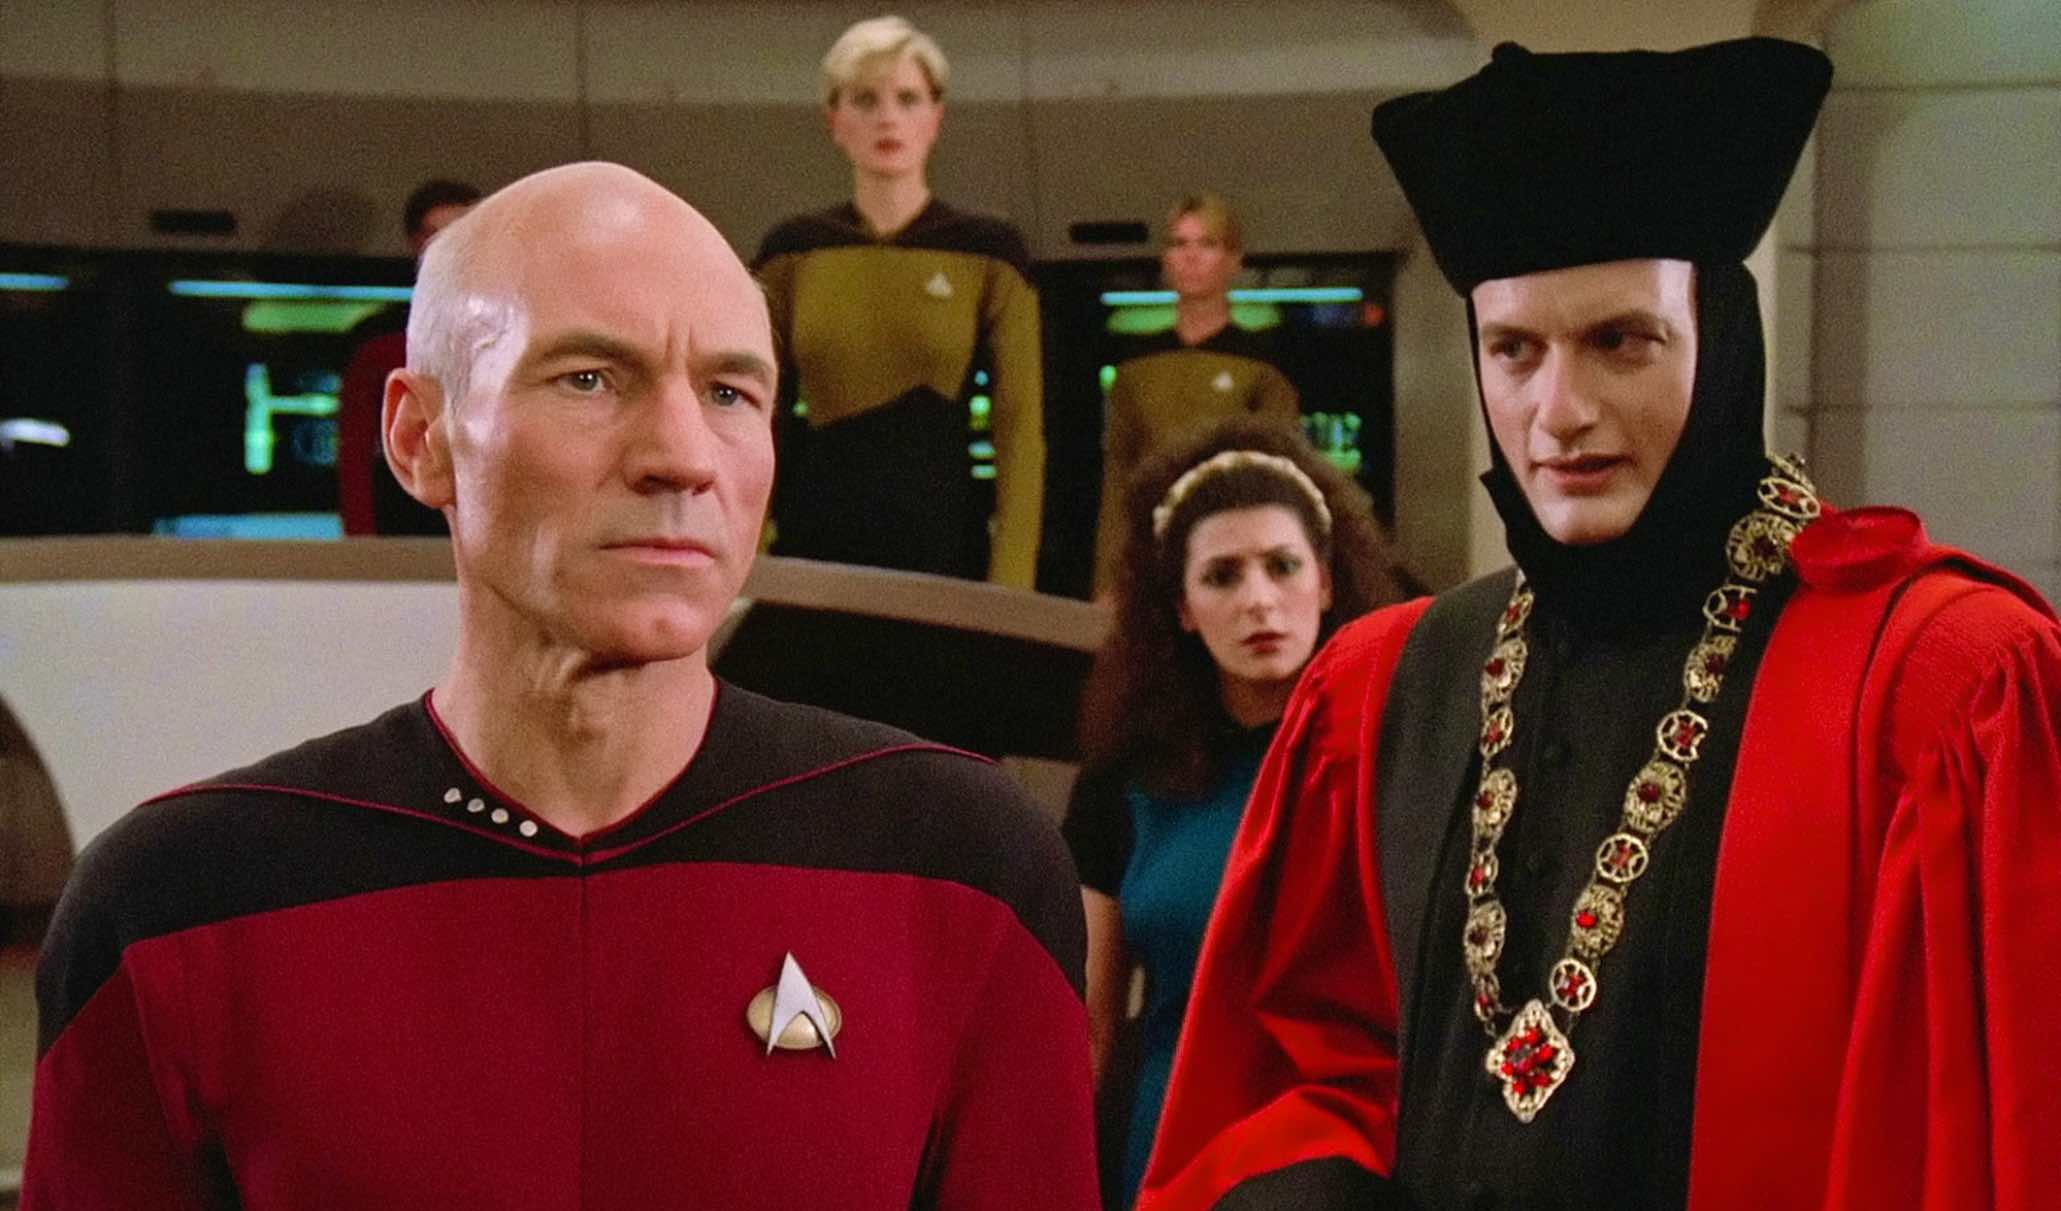 """John de Lancie in his judge costume from the Star Trek: The Next Generation episode """"Encounter at Farpoint"""" faces Jean-Luc Picard"""